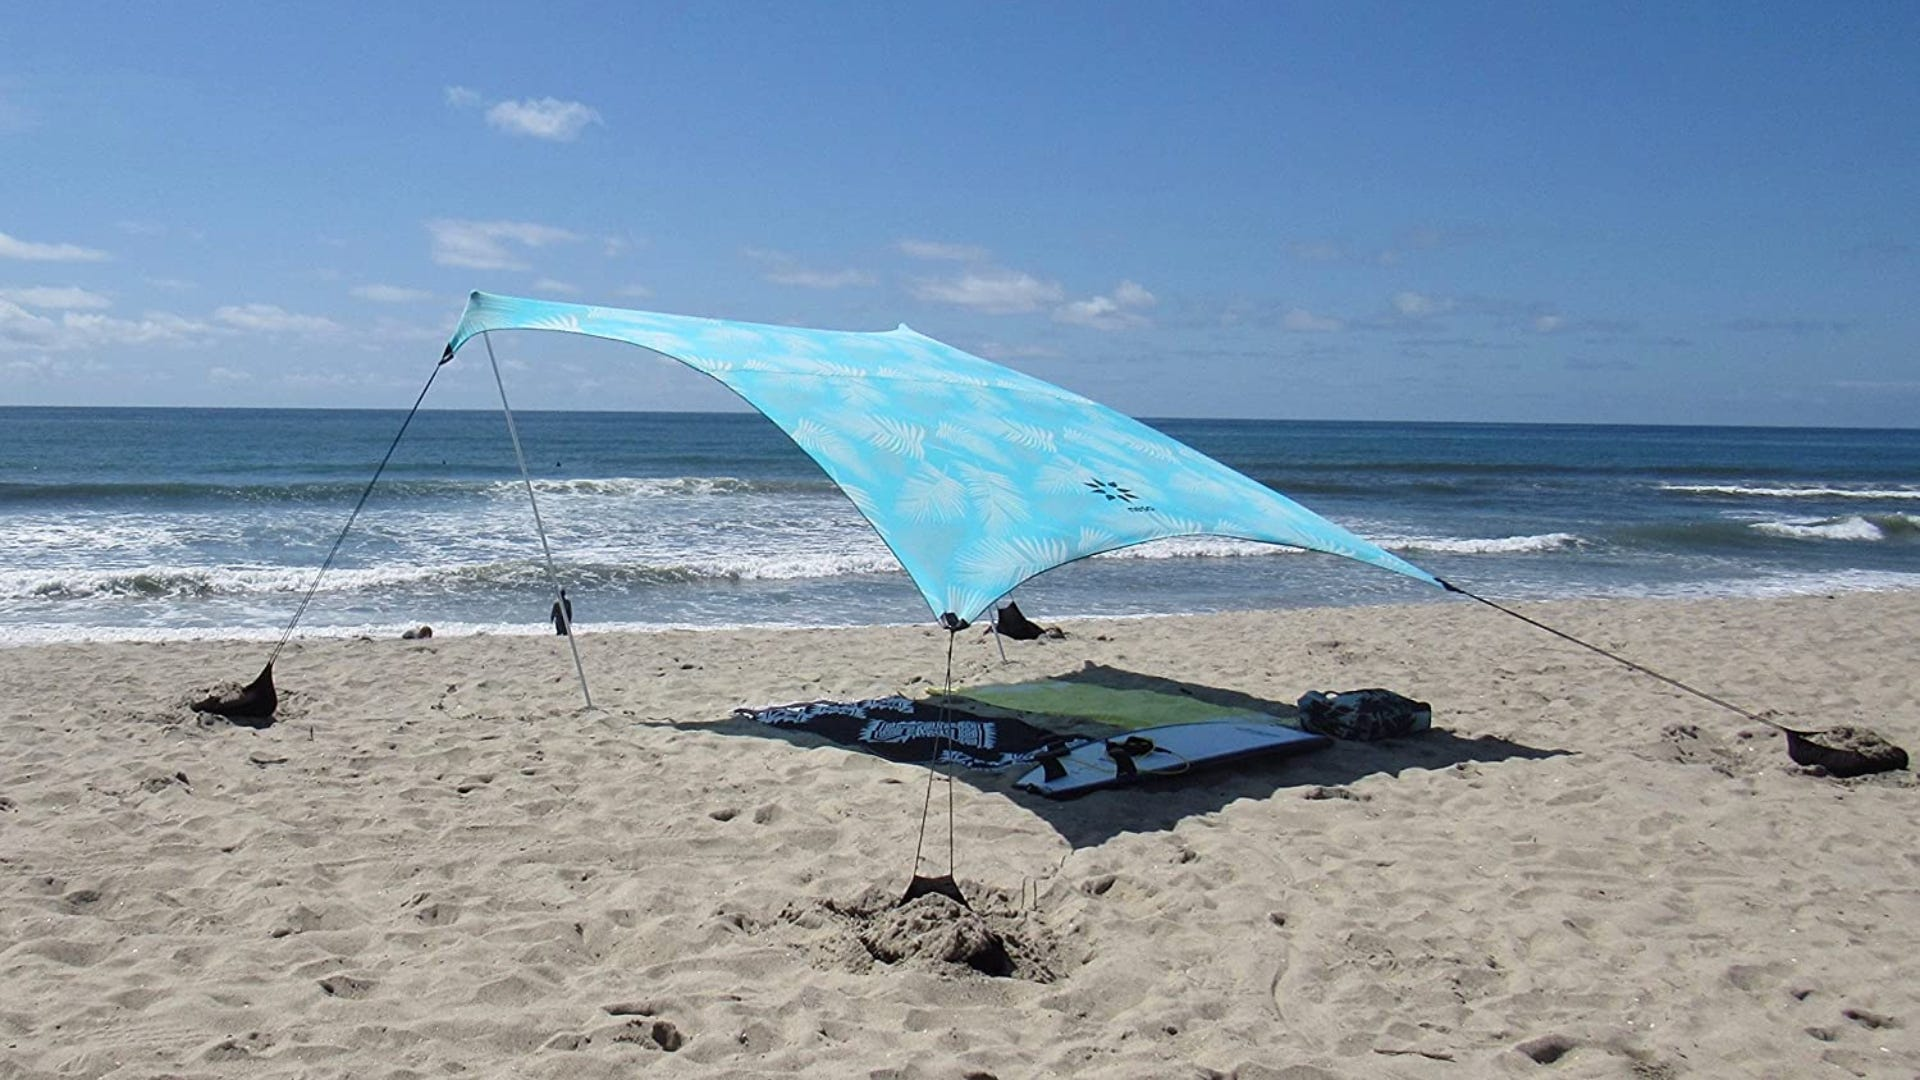 A aqua colored canopy spread over towels on a beach.